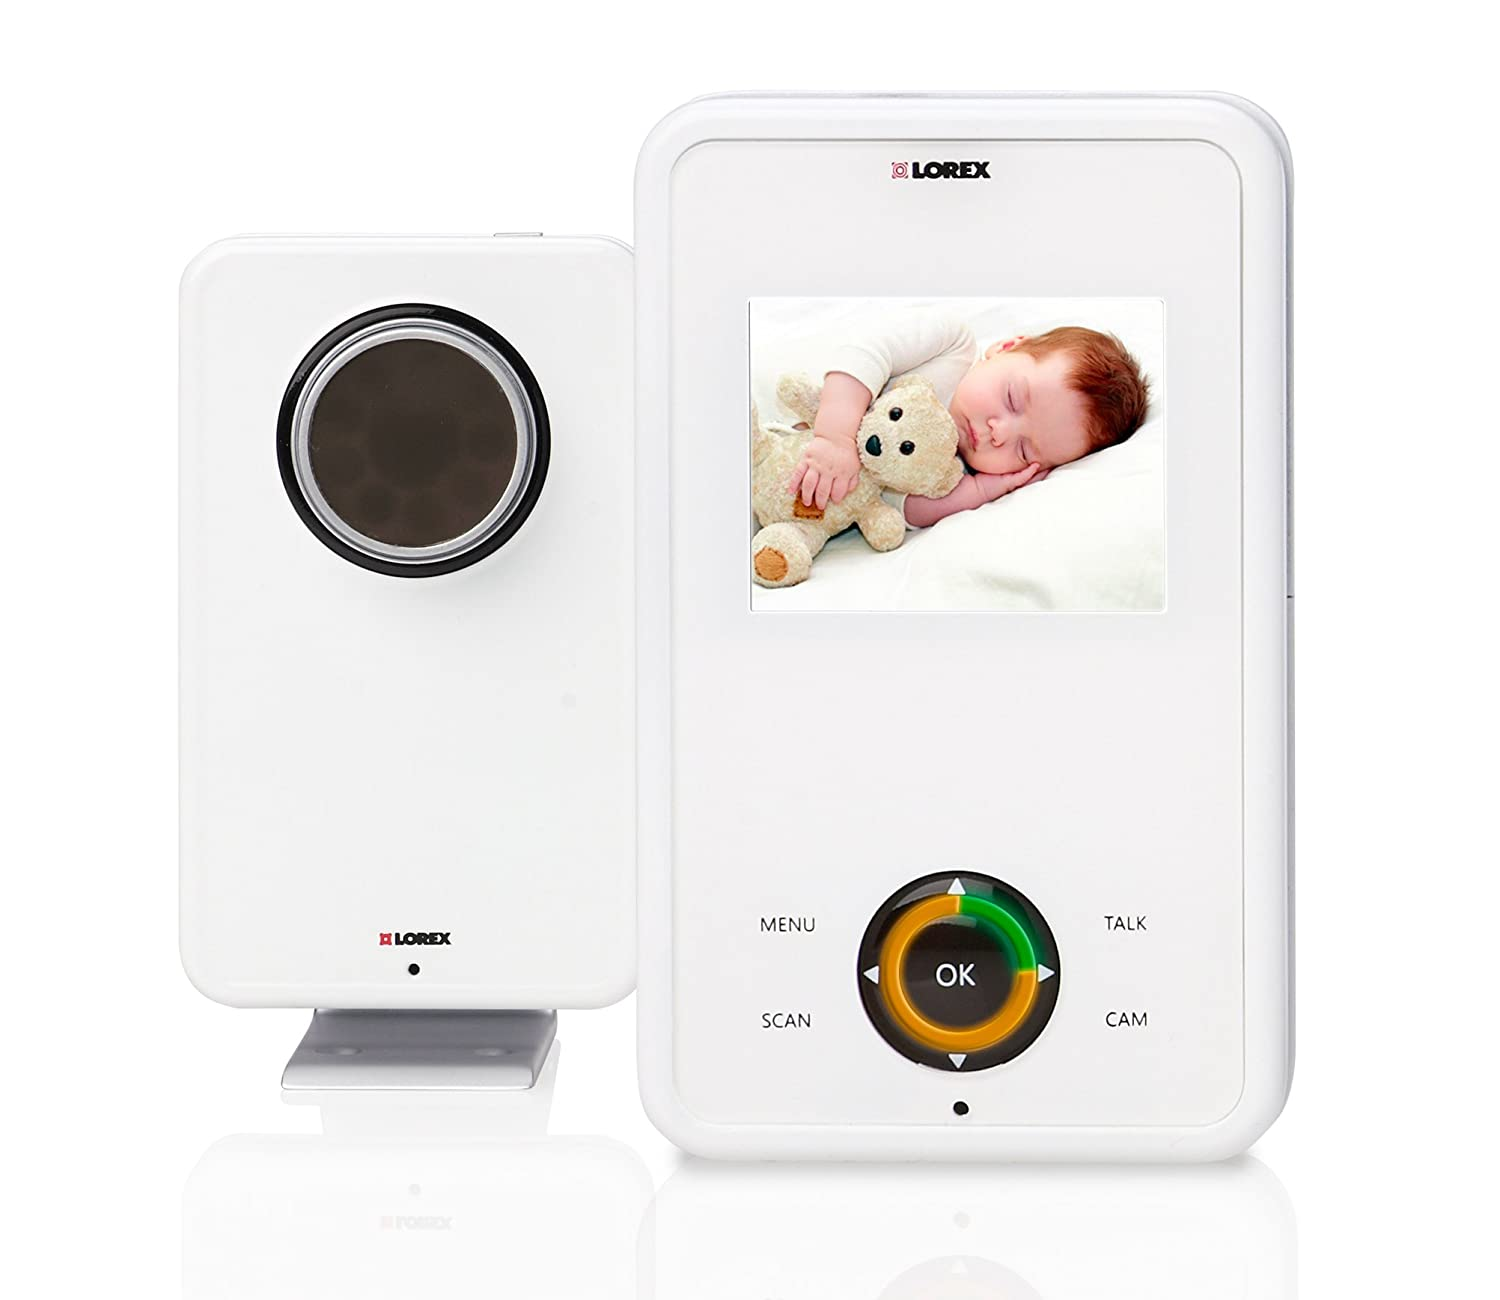 Lorex LW2004 Video Baby Monitor with 2.4-inch LCD and Automatic Night Vision $87.50